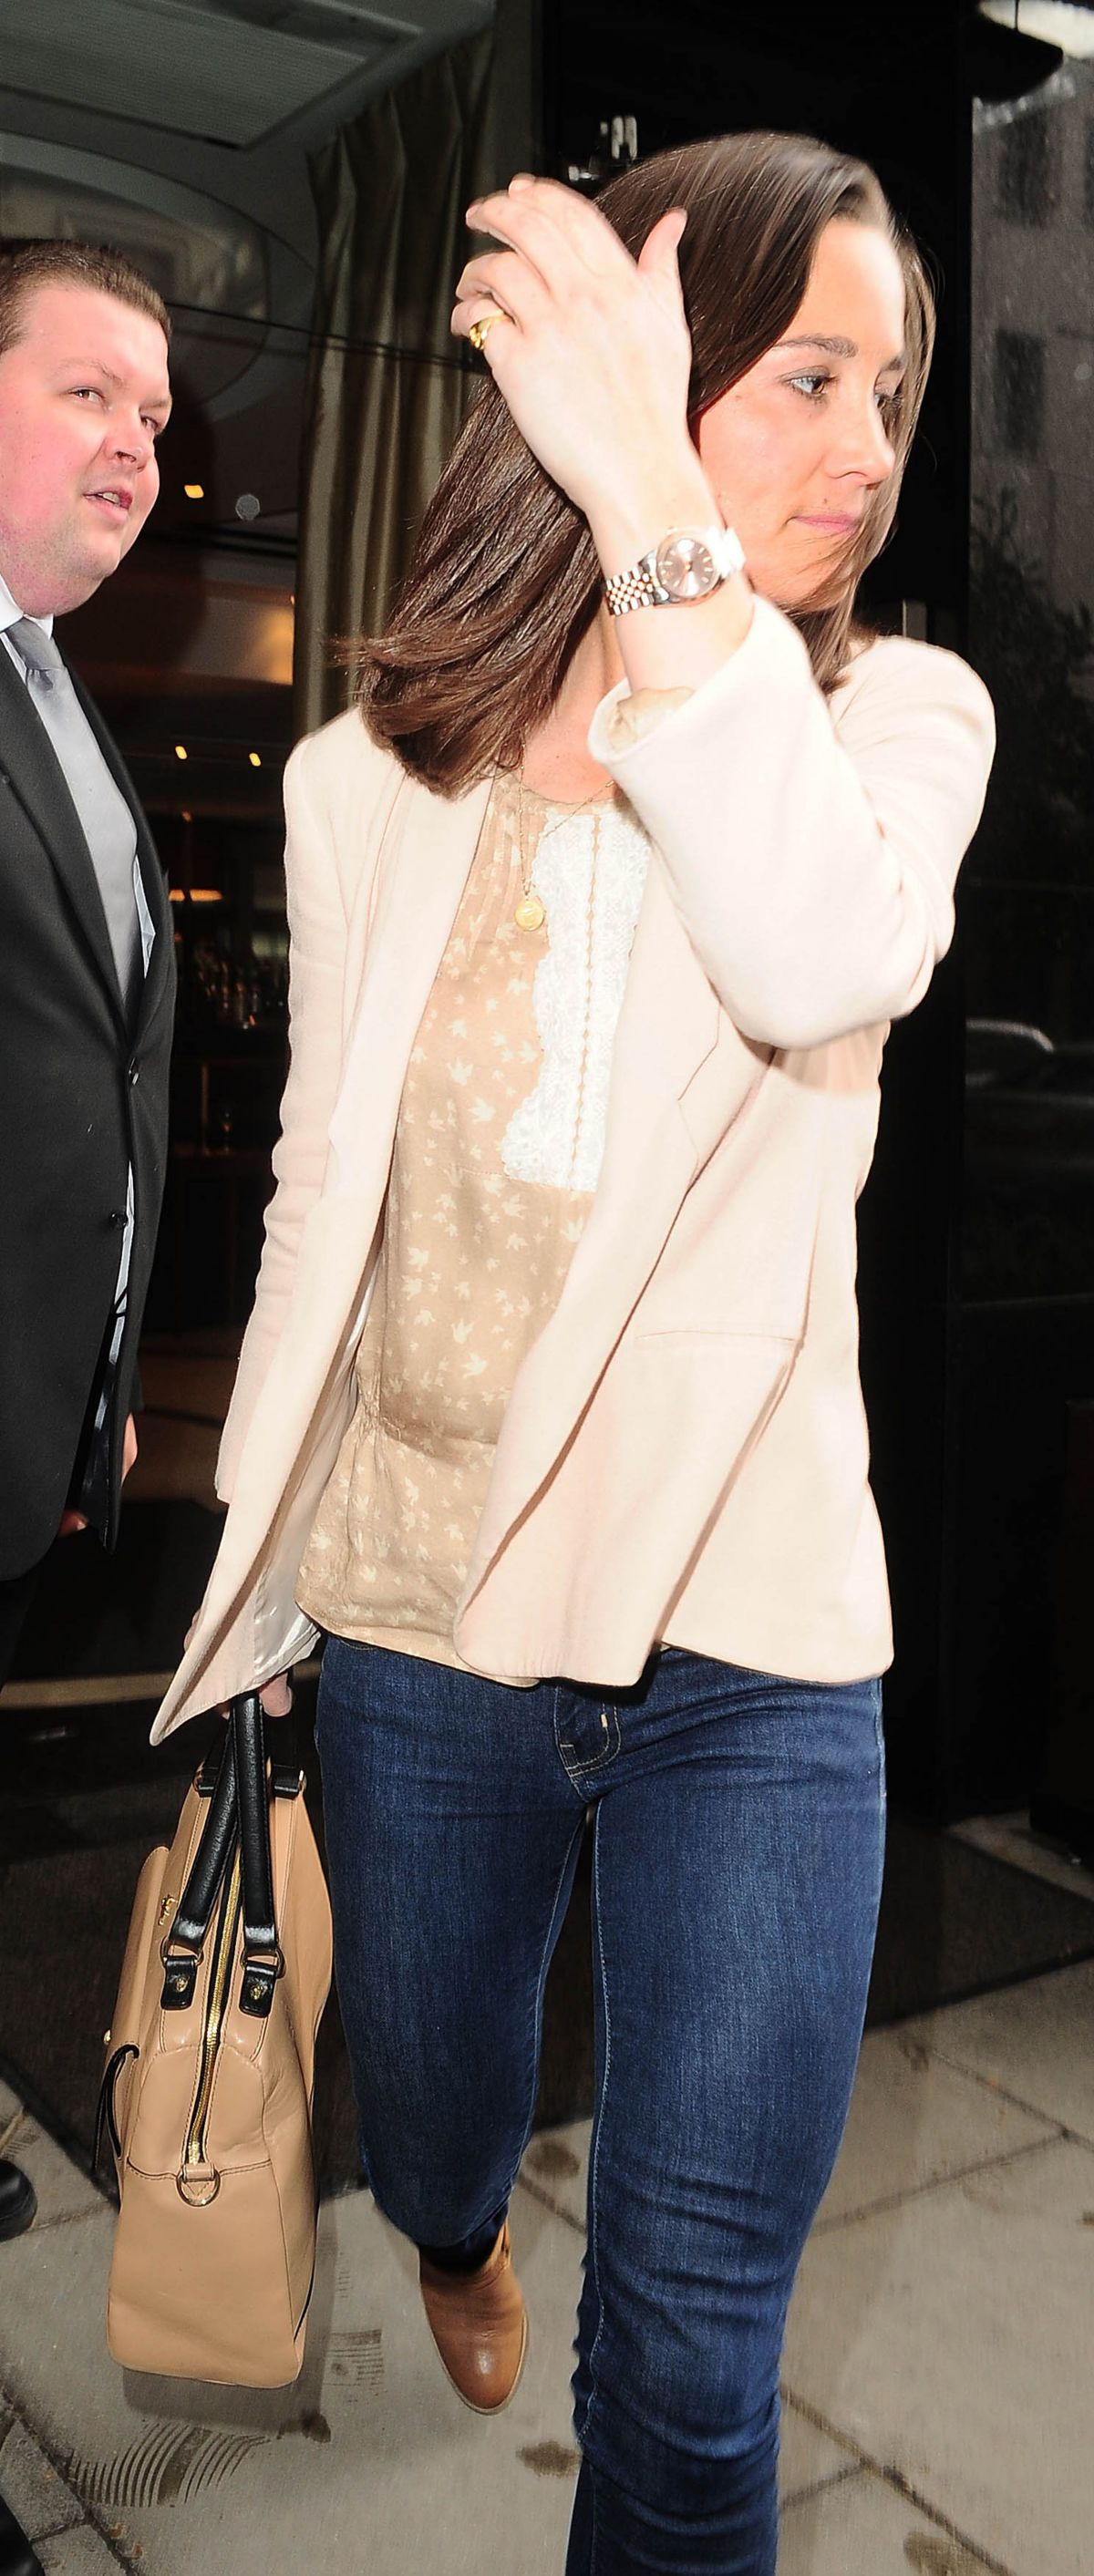 PIPPA MIDDLETON in Tight Jeans Leaves Square Restaurant in London